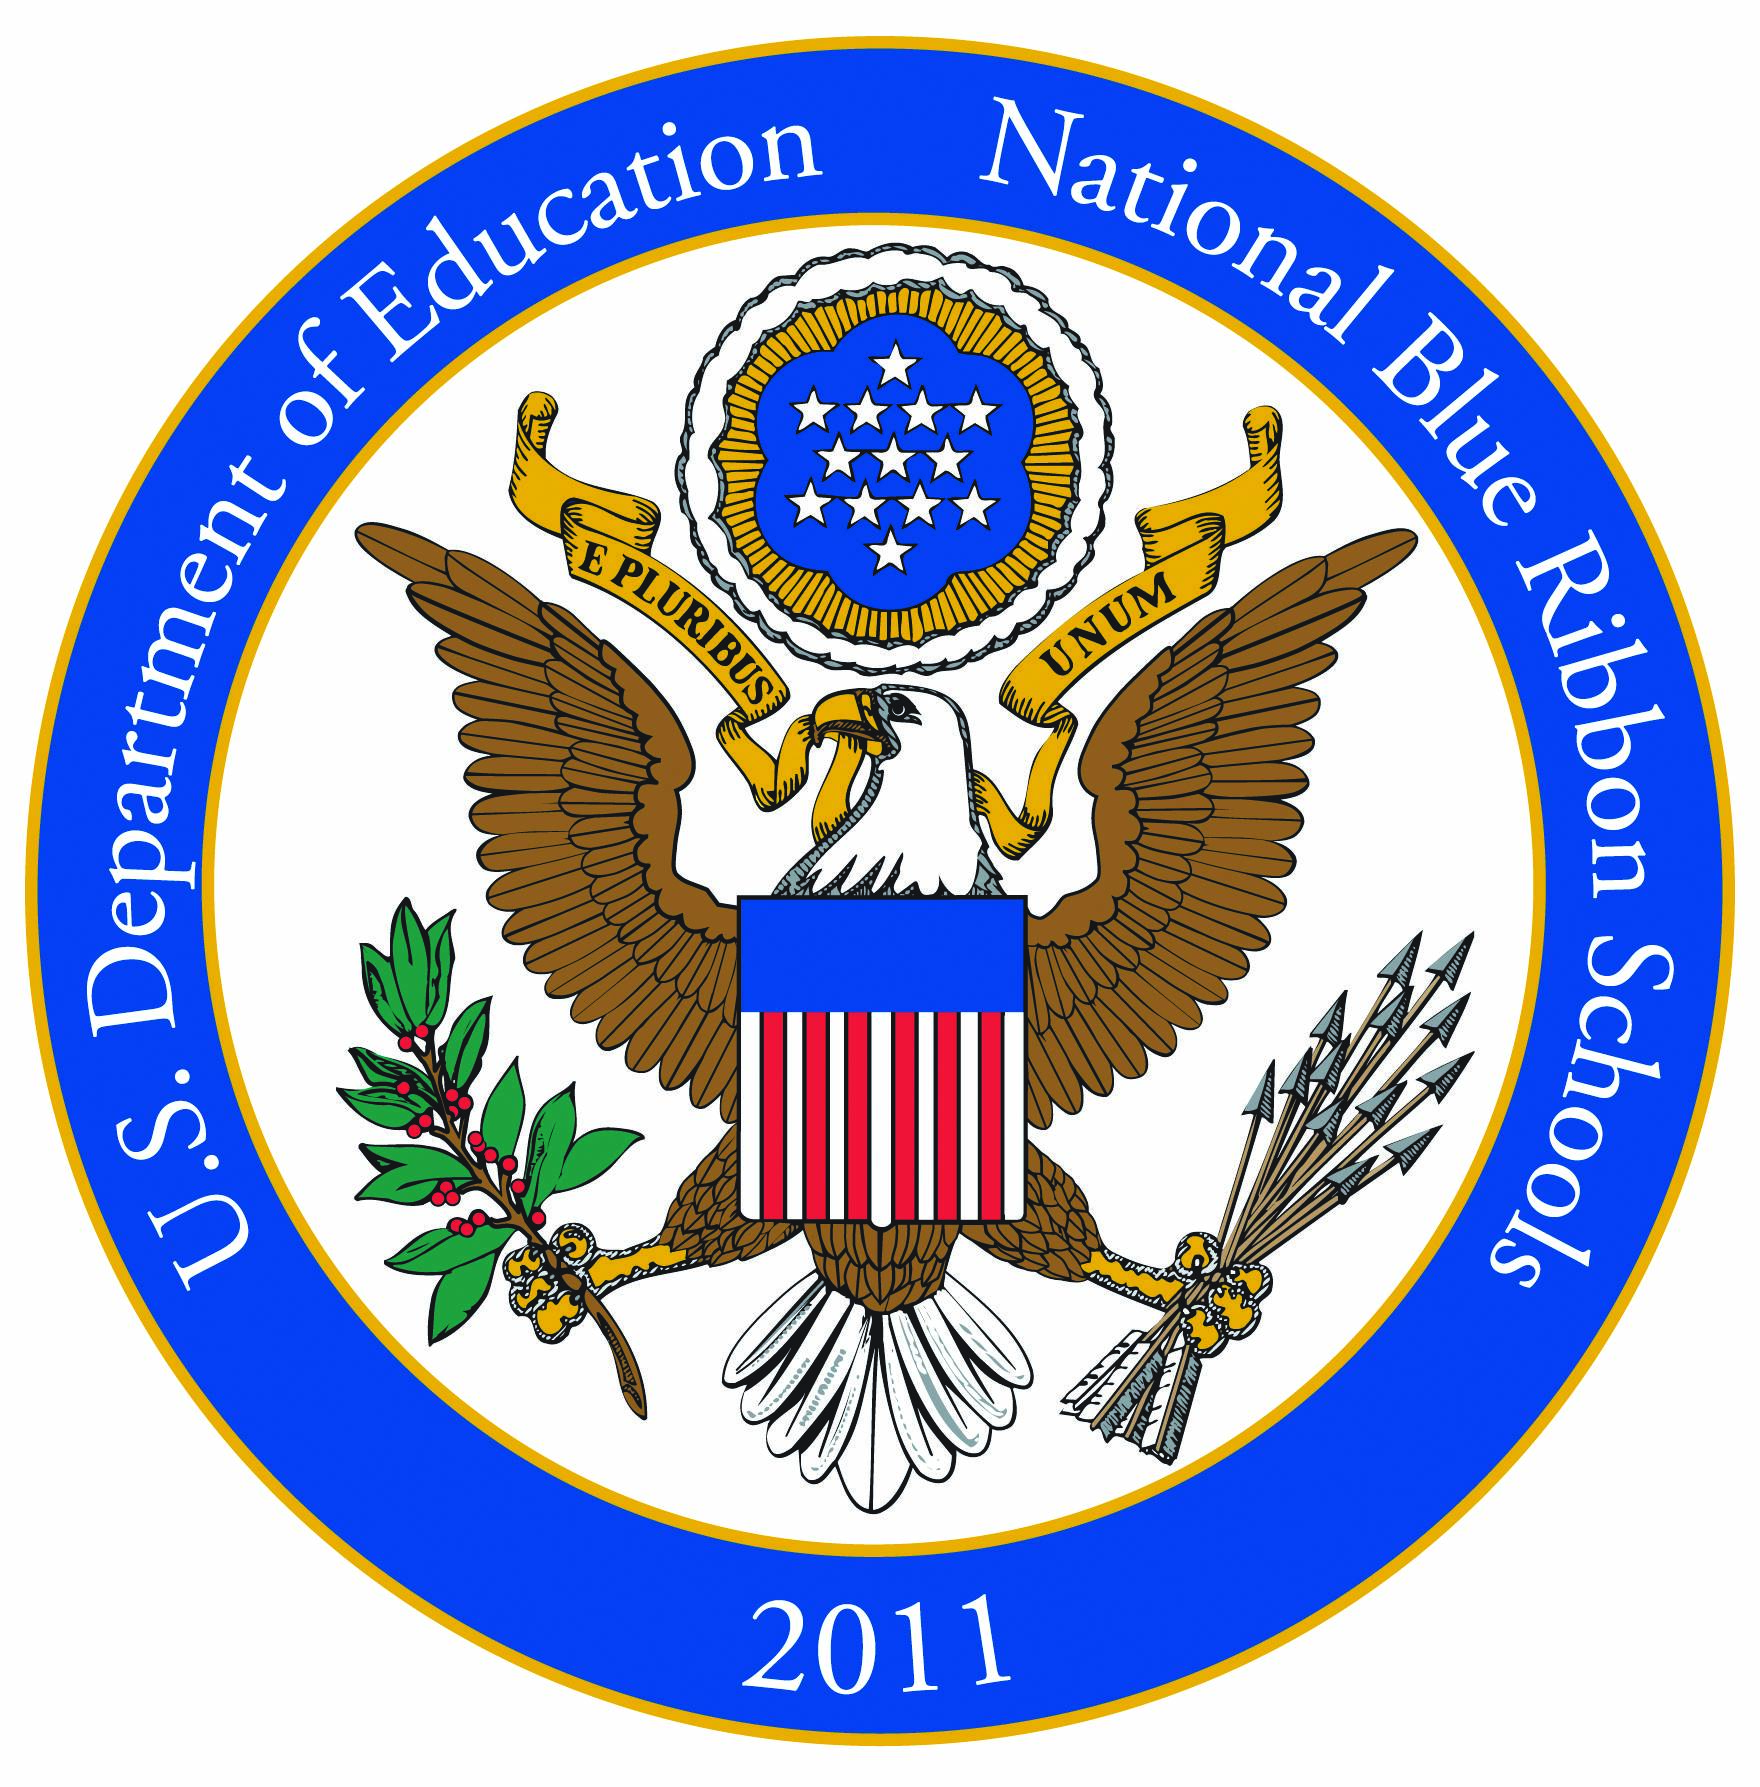 National Blue Ribbon School Seal from DOE 2011